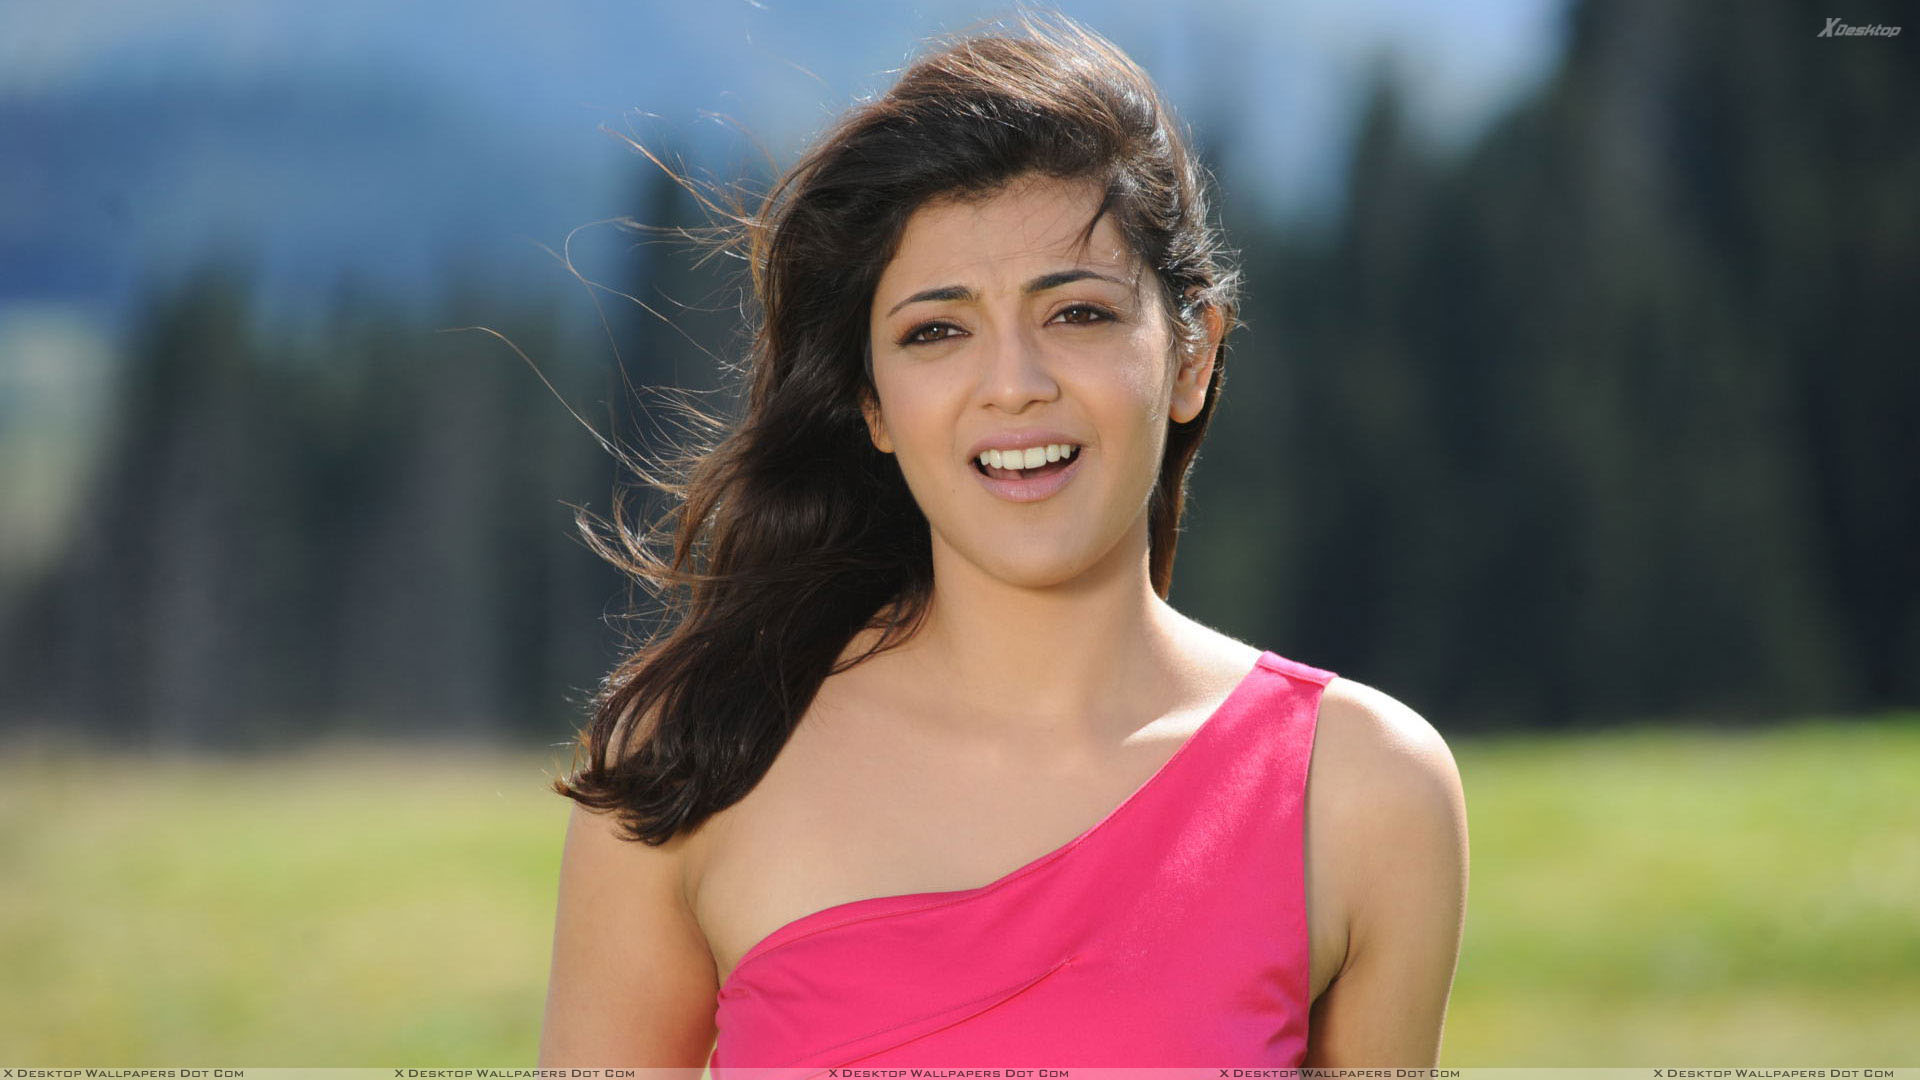 kajal aggarwal open mouth and cute eyes in pink dress wallpaper